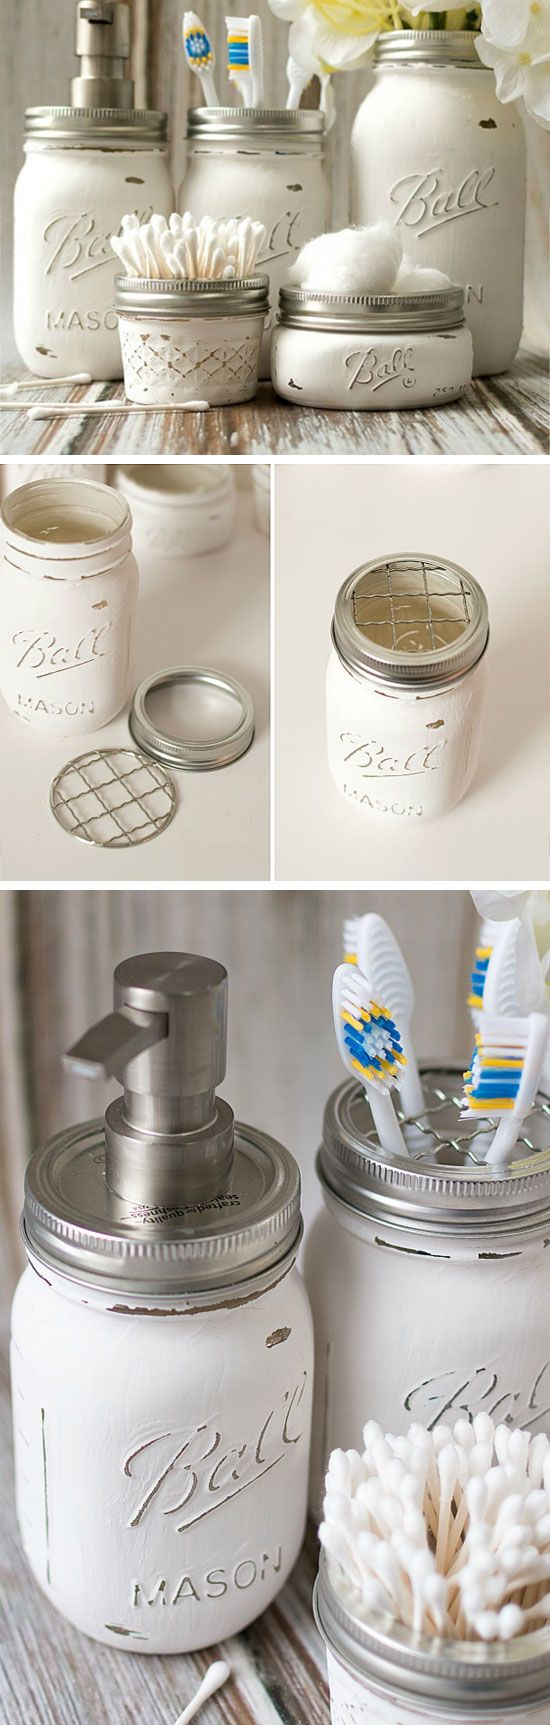 20 diy bathroom storage ideas for small spaces jars for Small bathroom jars